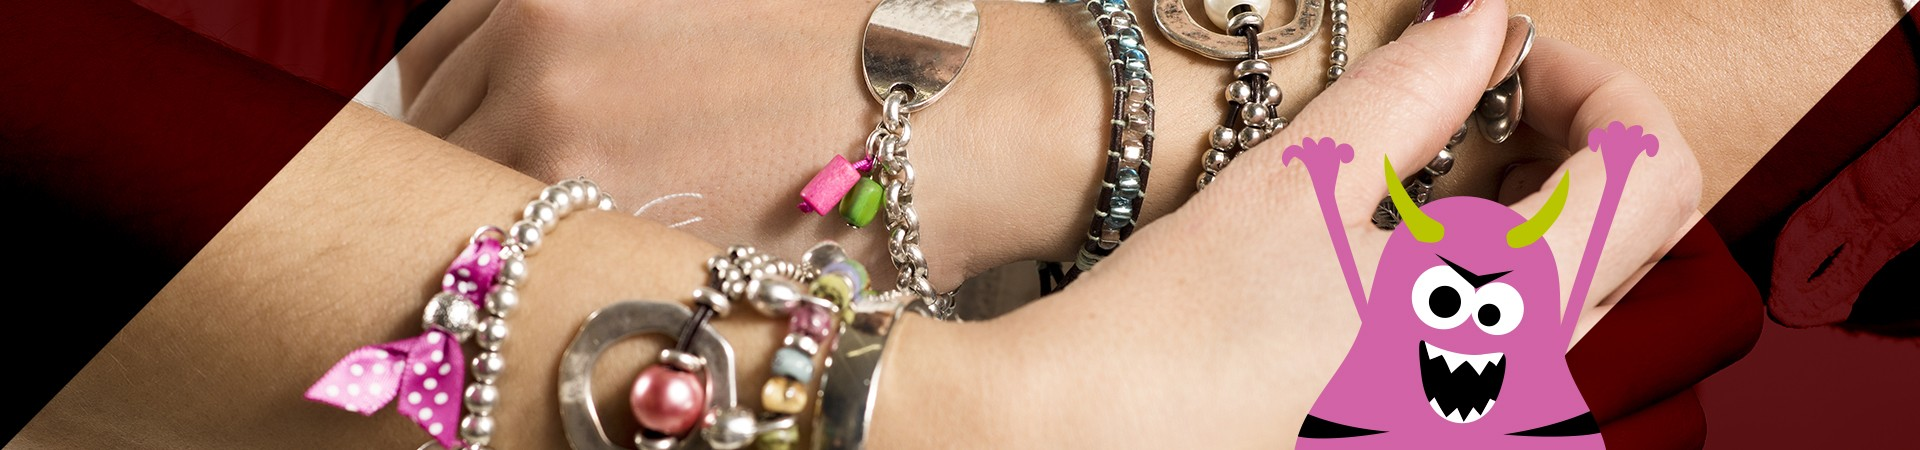 monster peering out corner - woman's jewelry